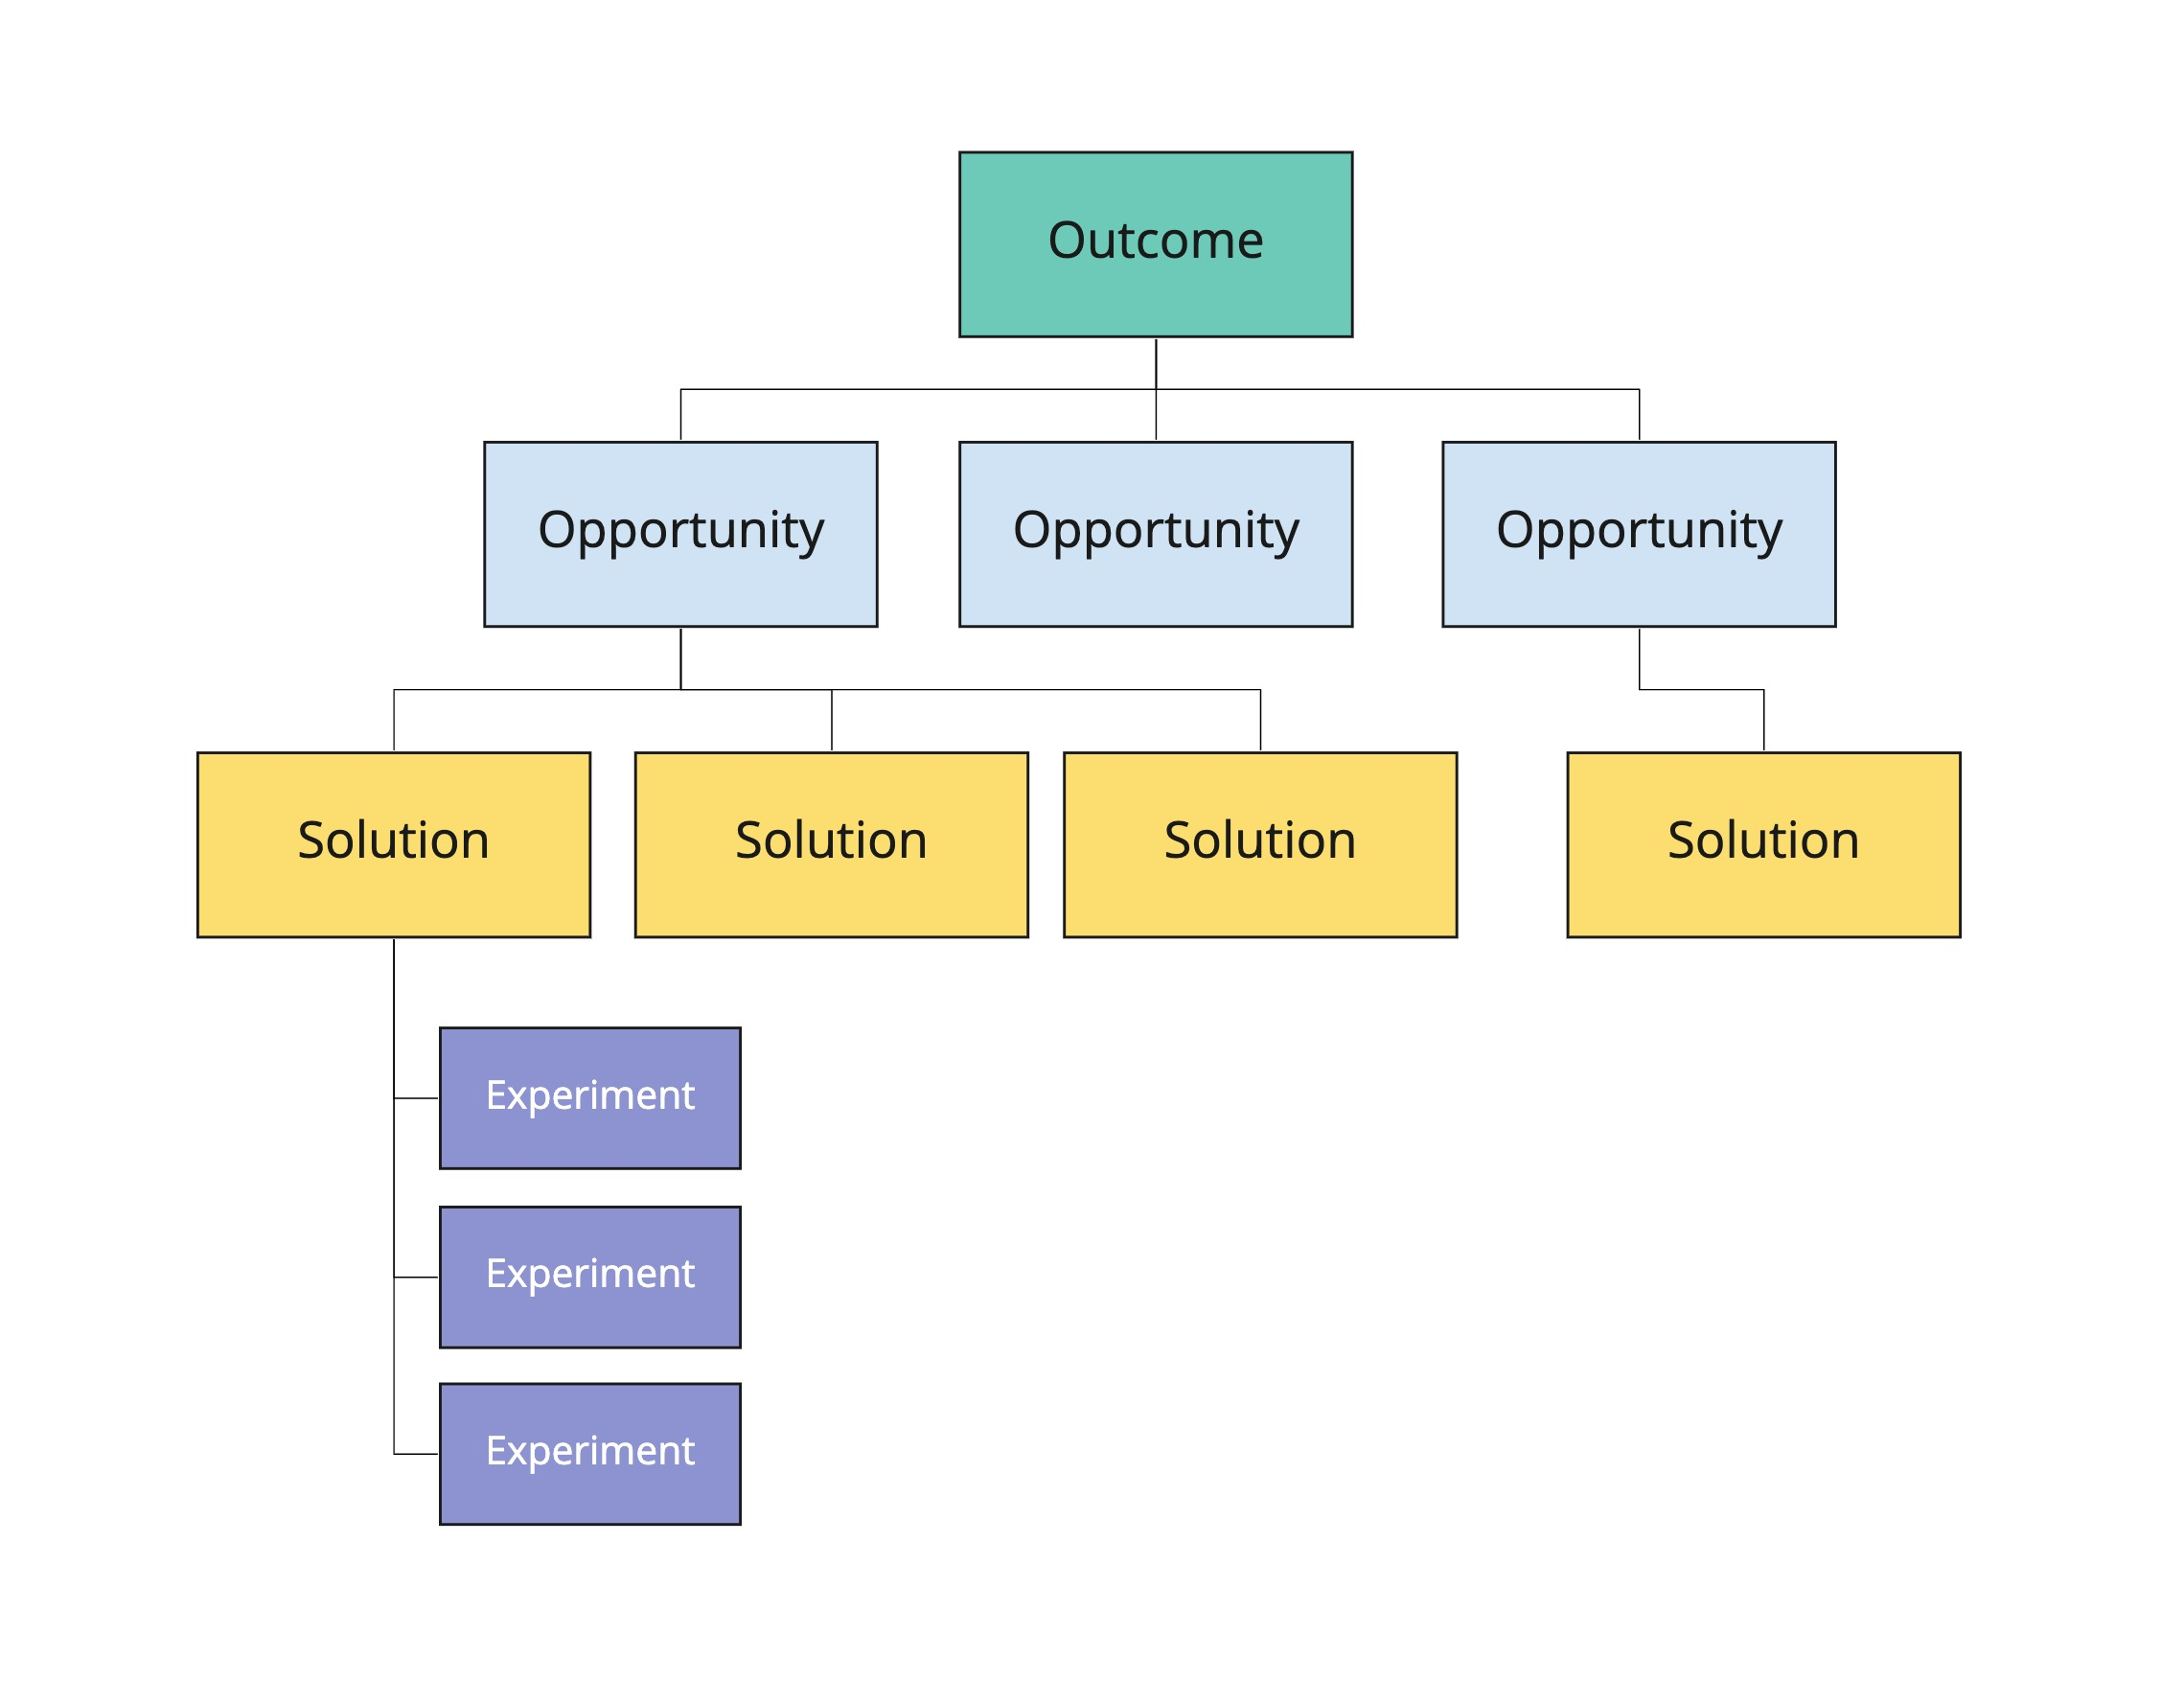 Diagram of an opportunity solution tree